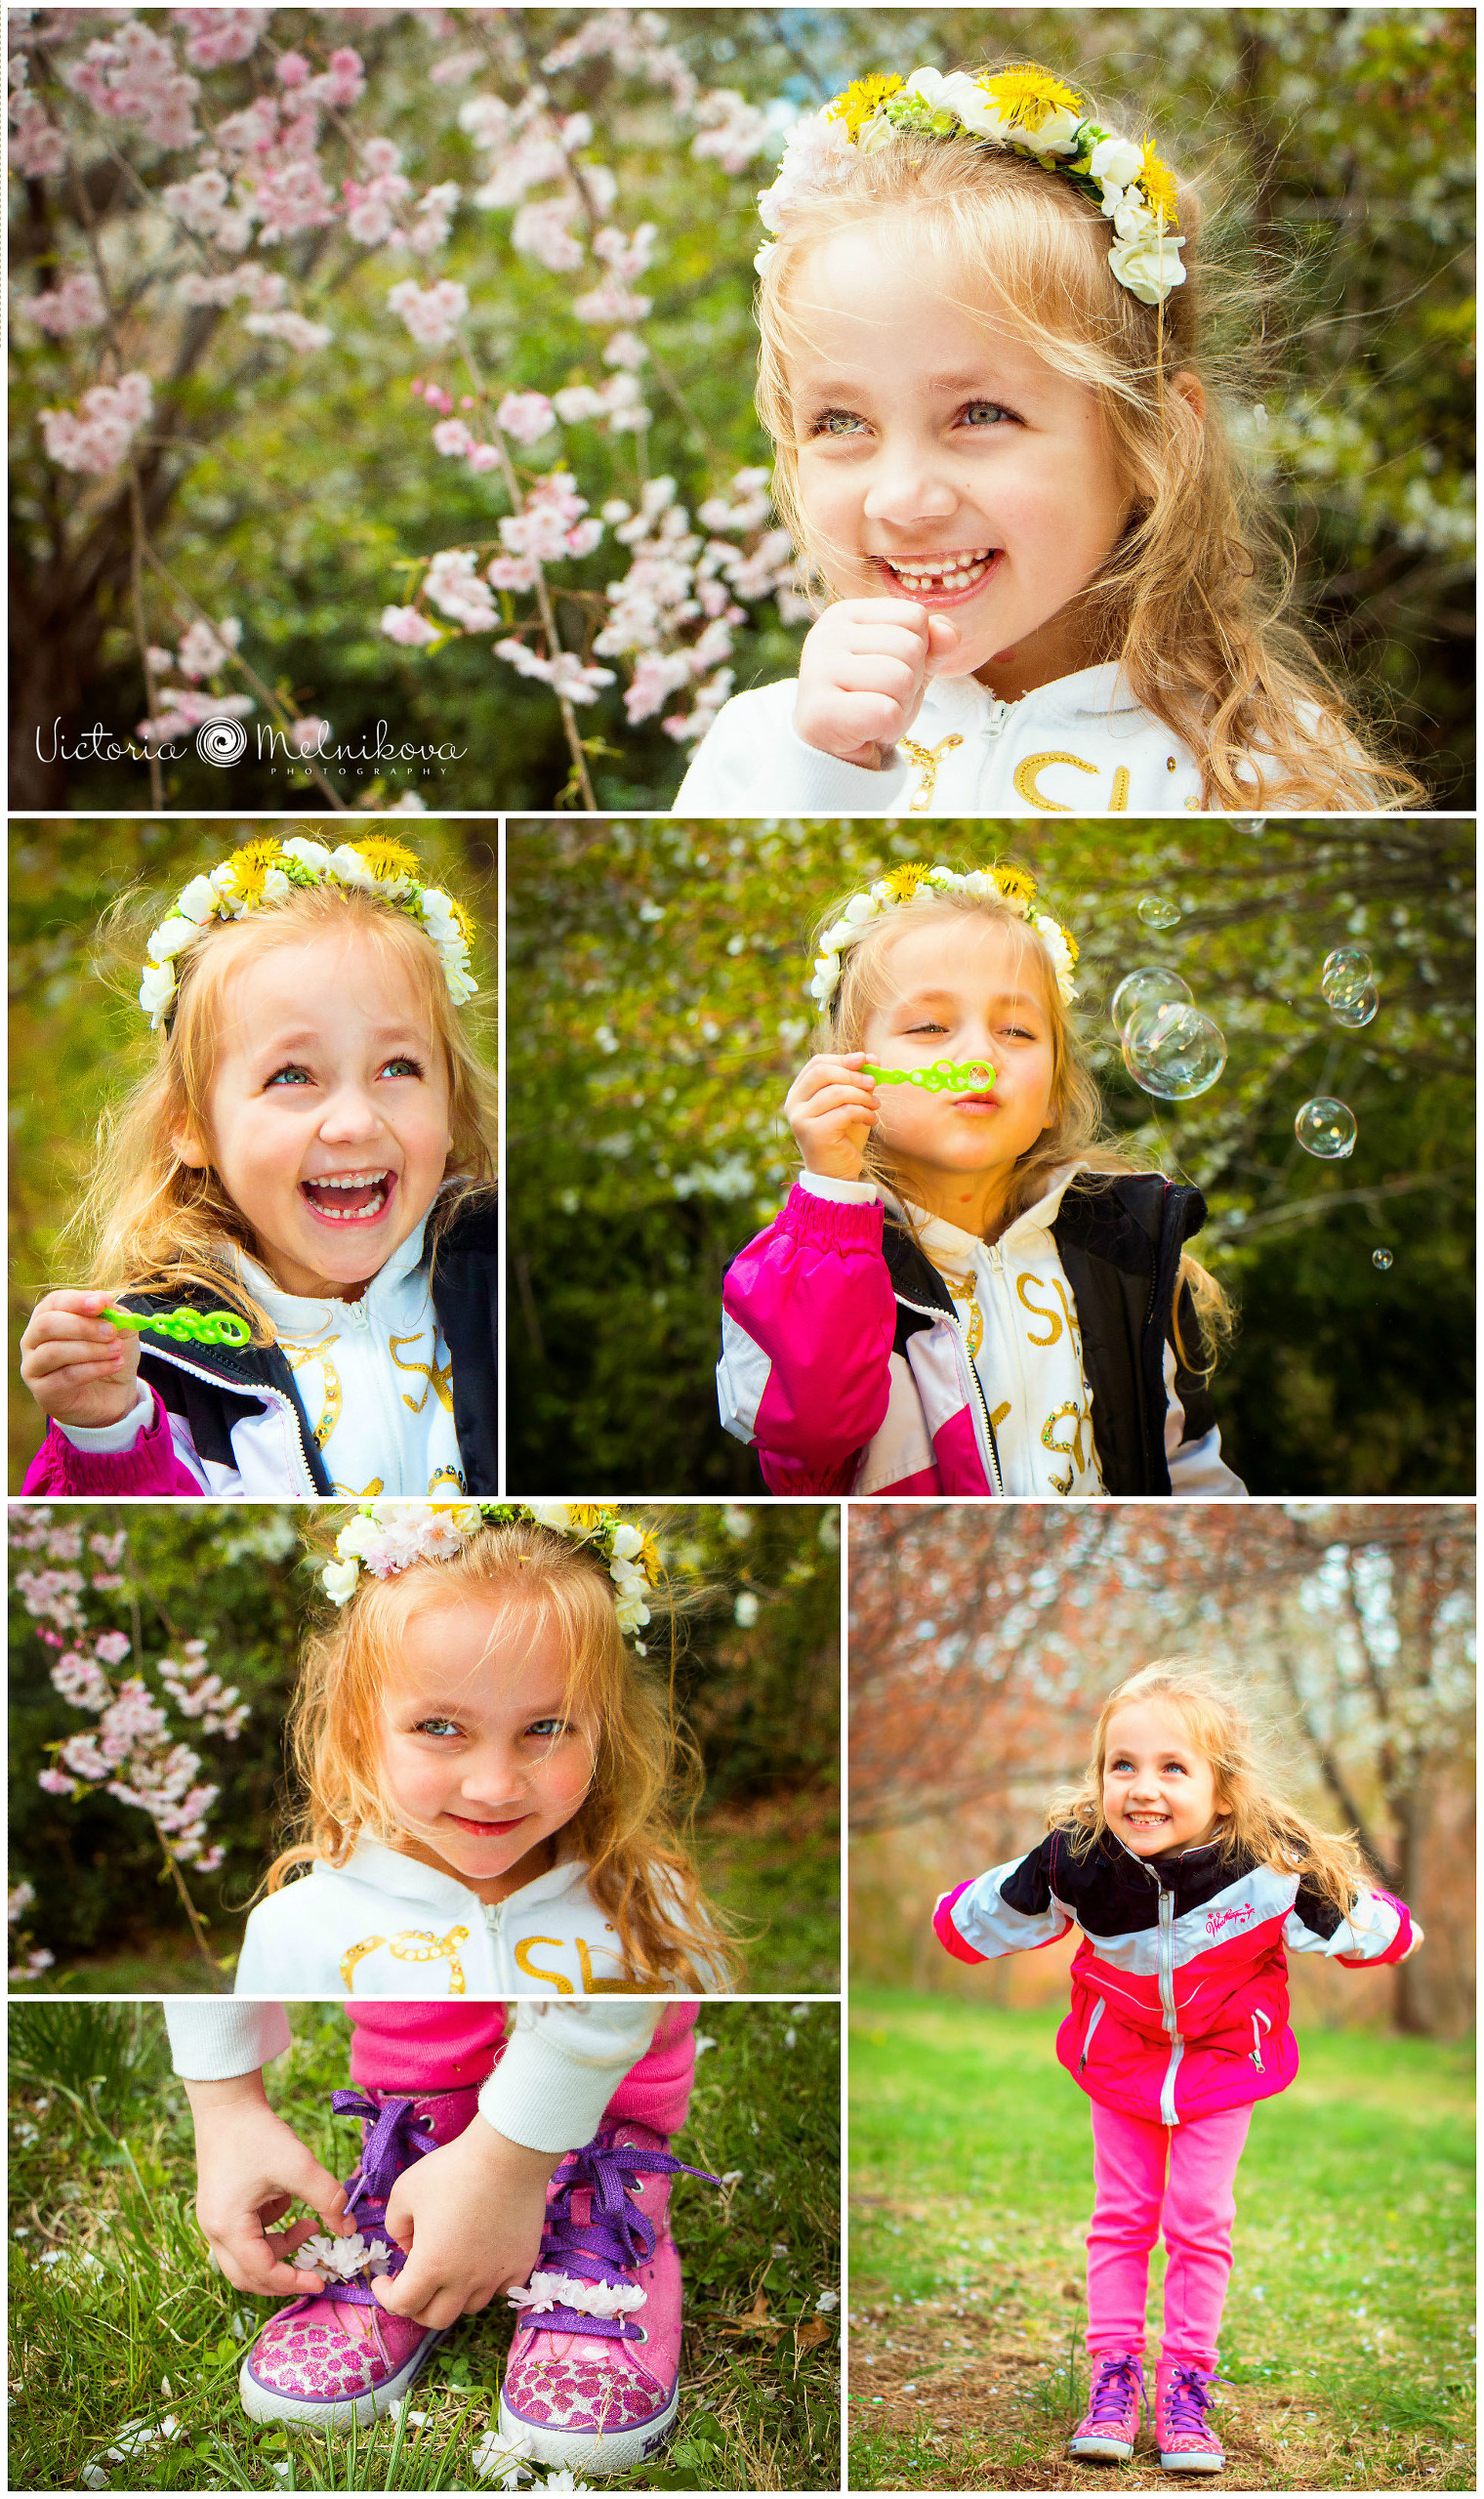 Kids spring photo ideas